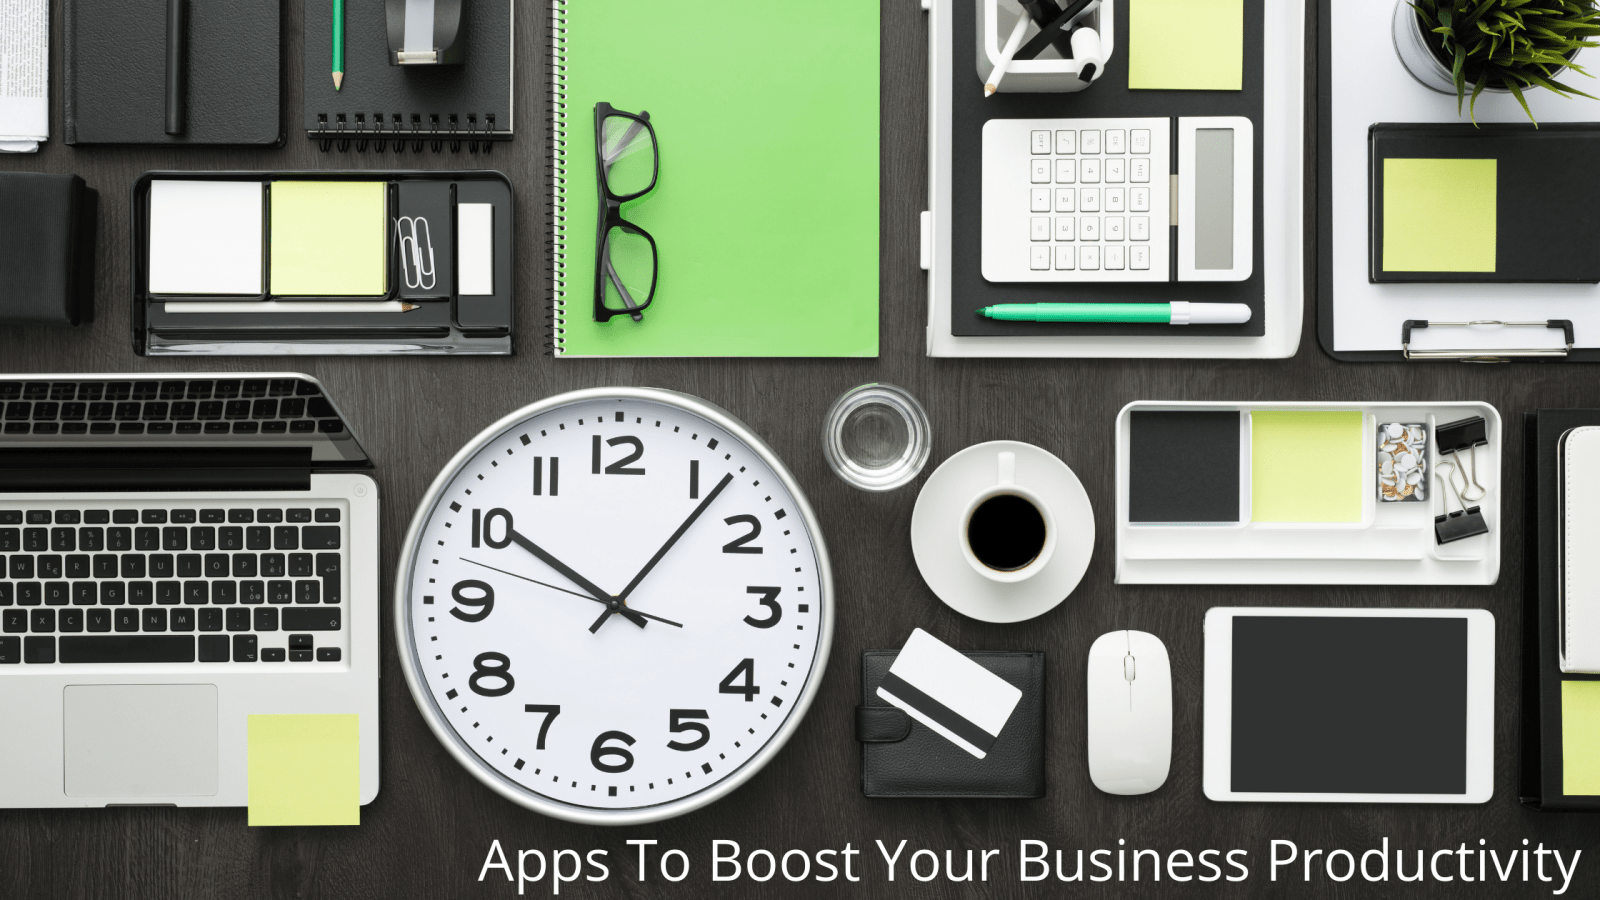 5 Apps To Boost Your Business Productivity